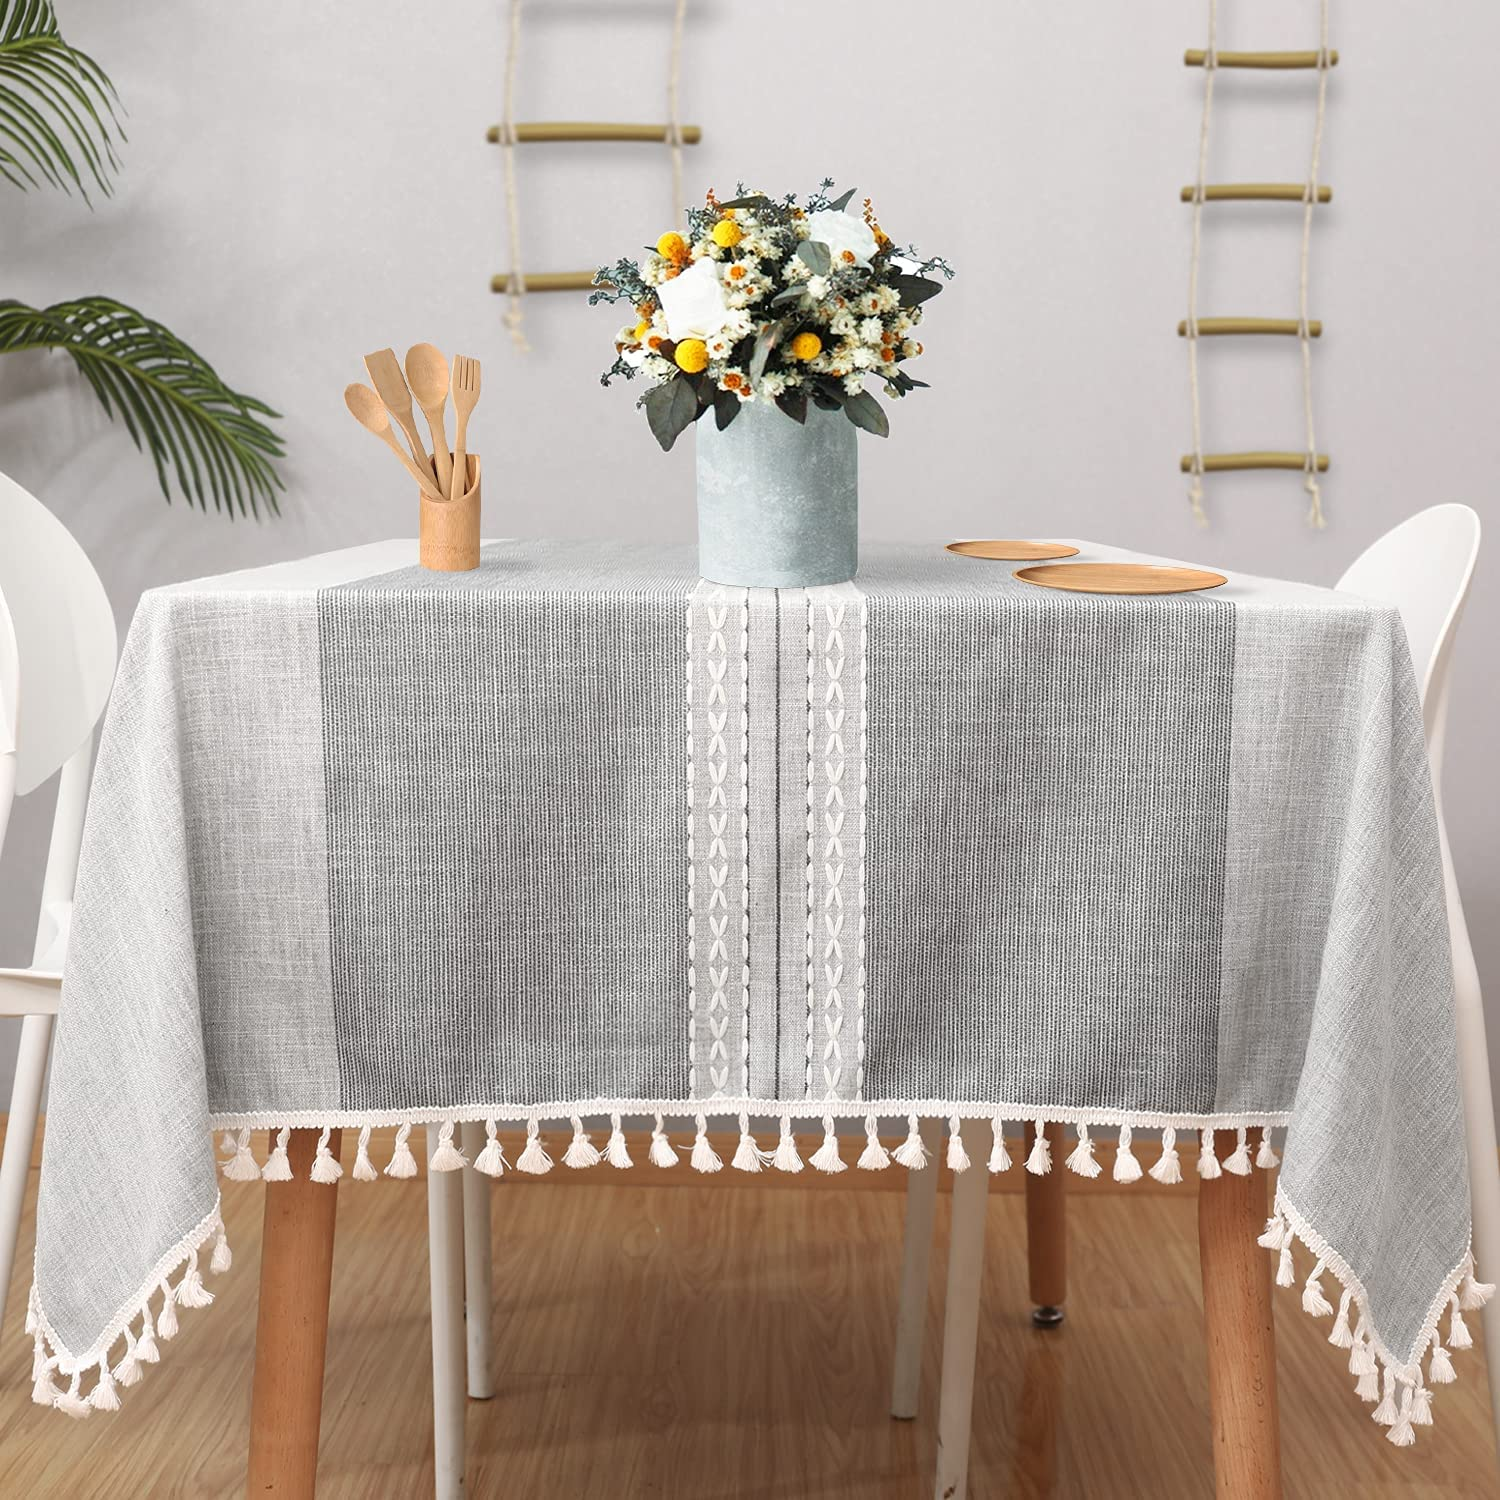 Indianapolis Mall Vailge Farmhouse Tablecloth 55